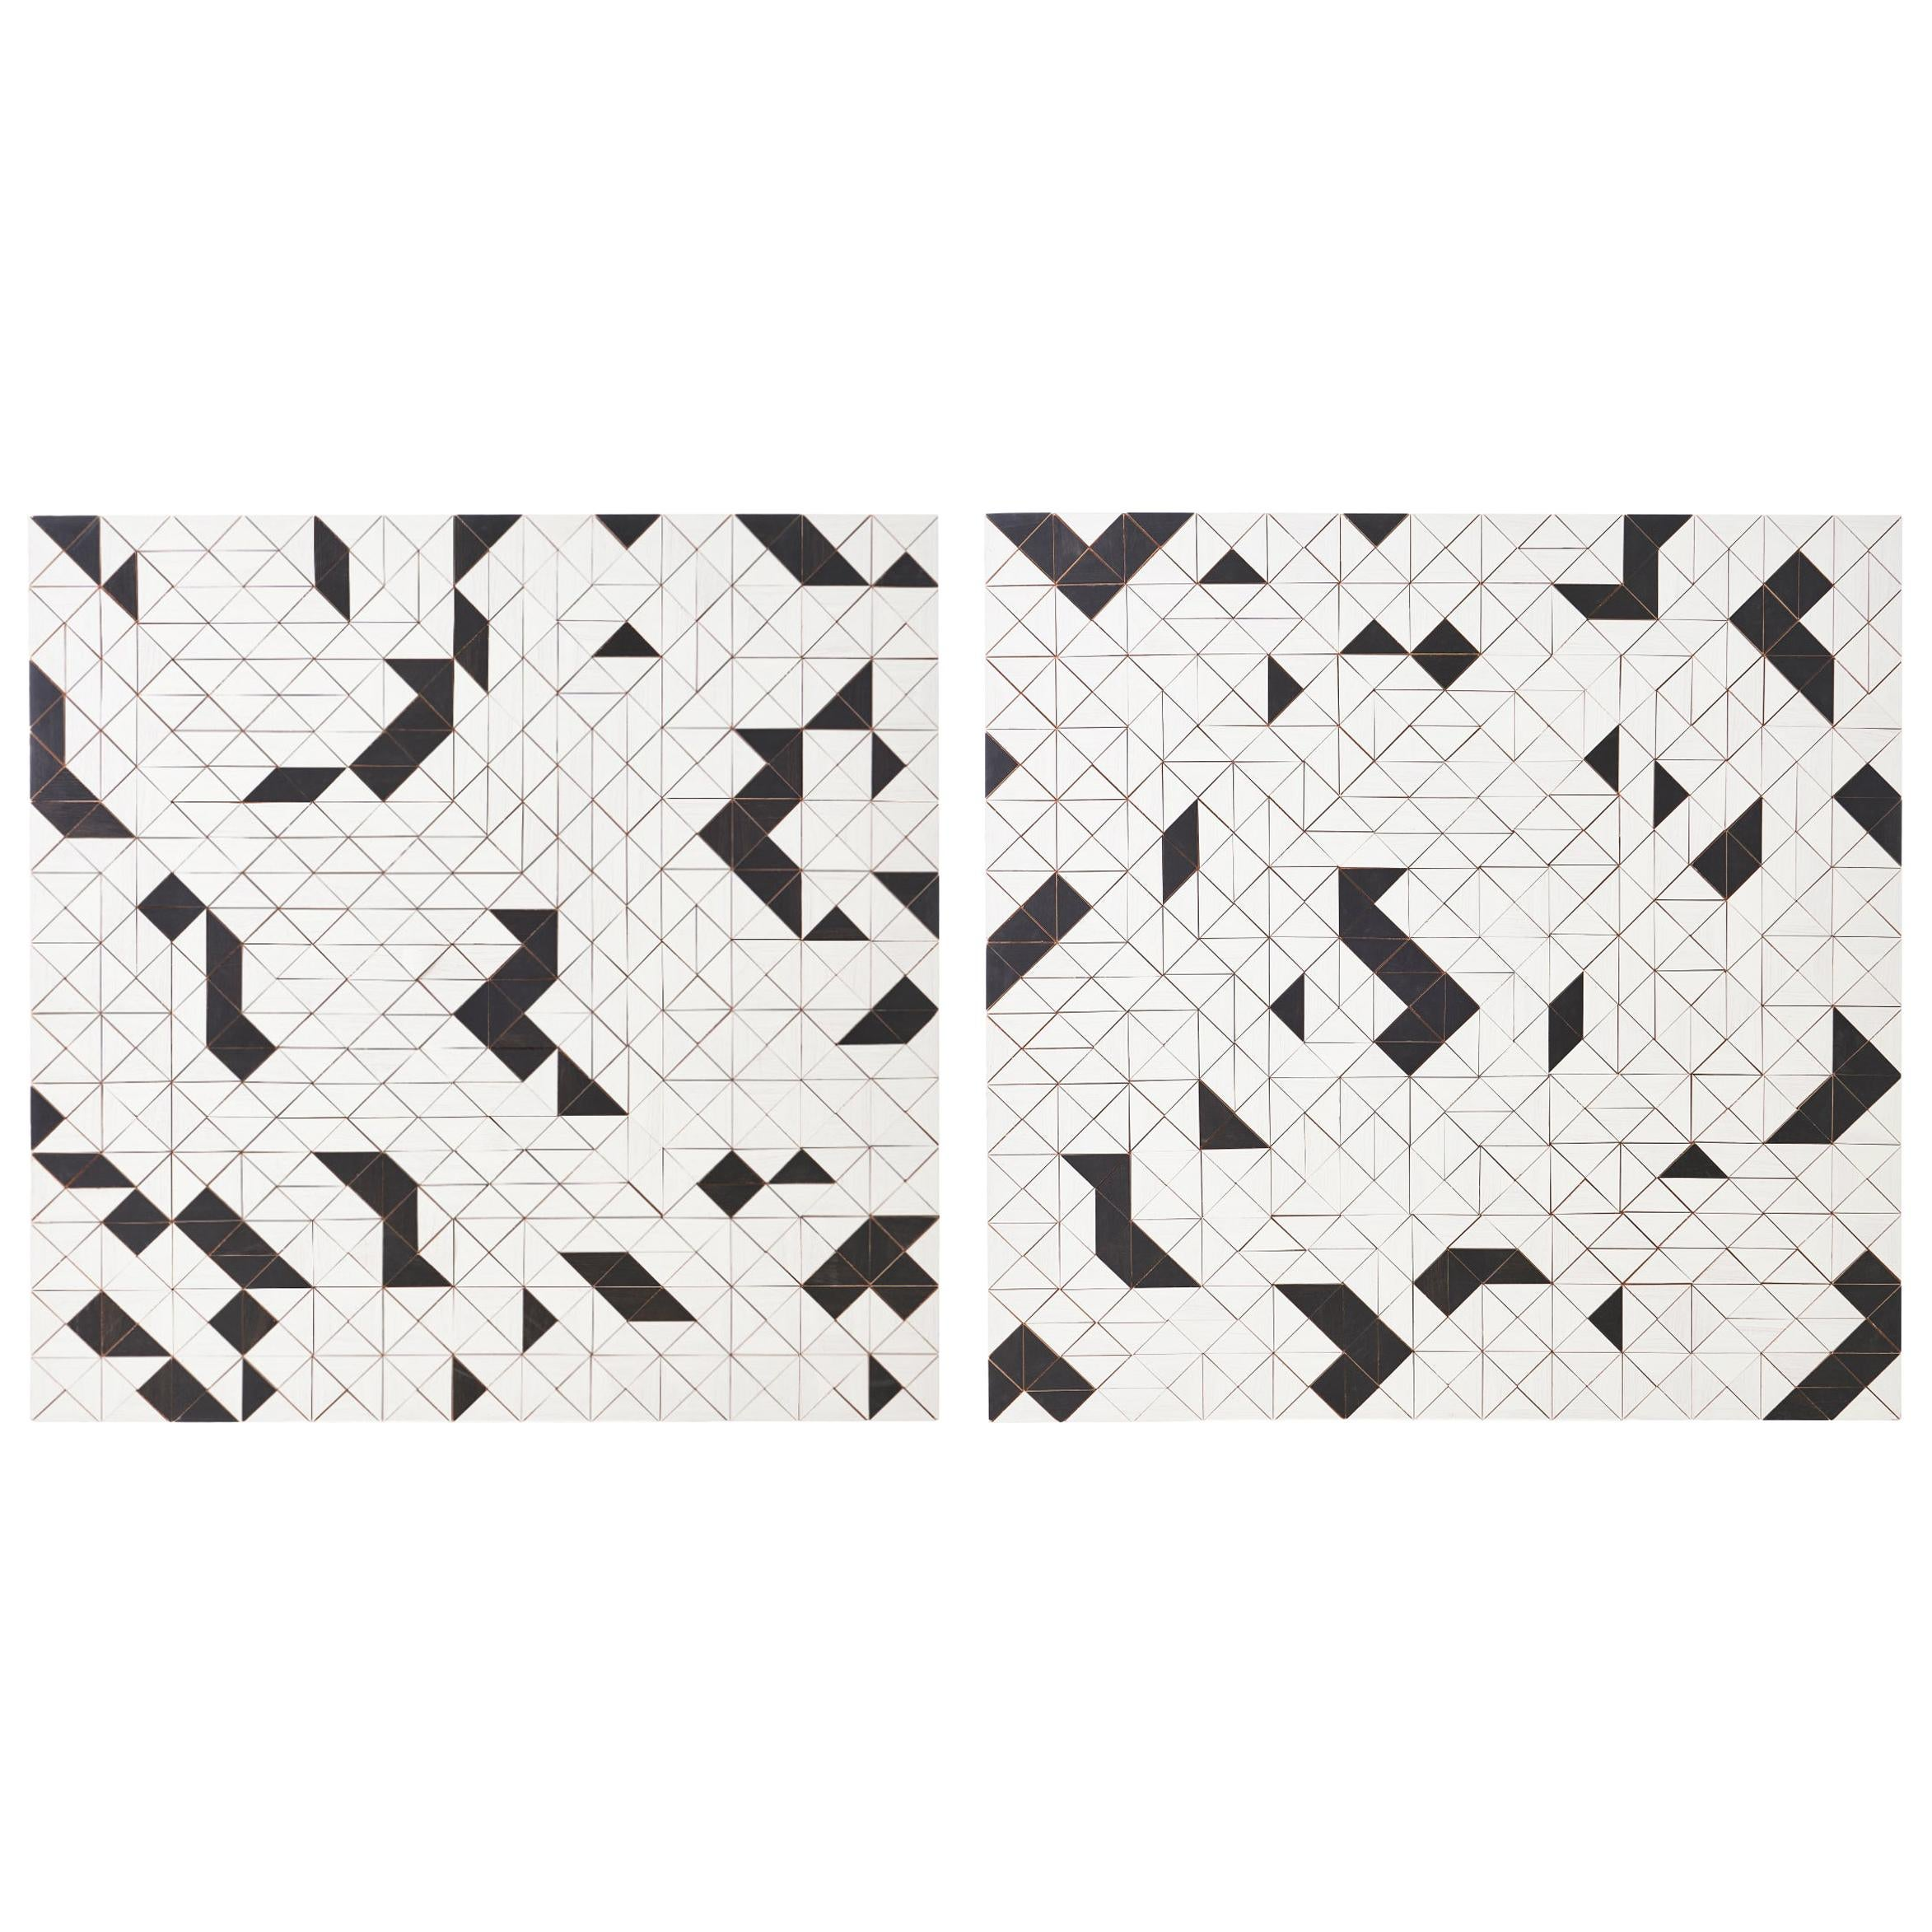 Pair of Black and White Abstract Wood Panels by Michelle Peterson Albandoz